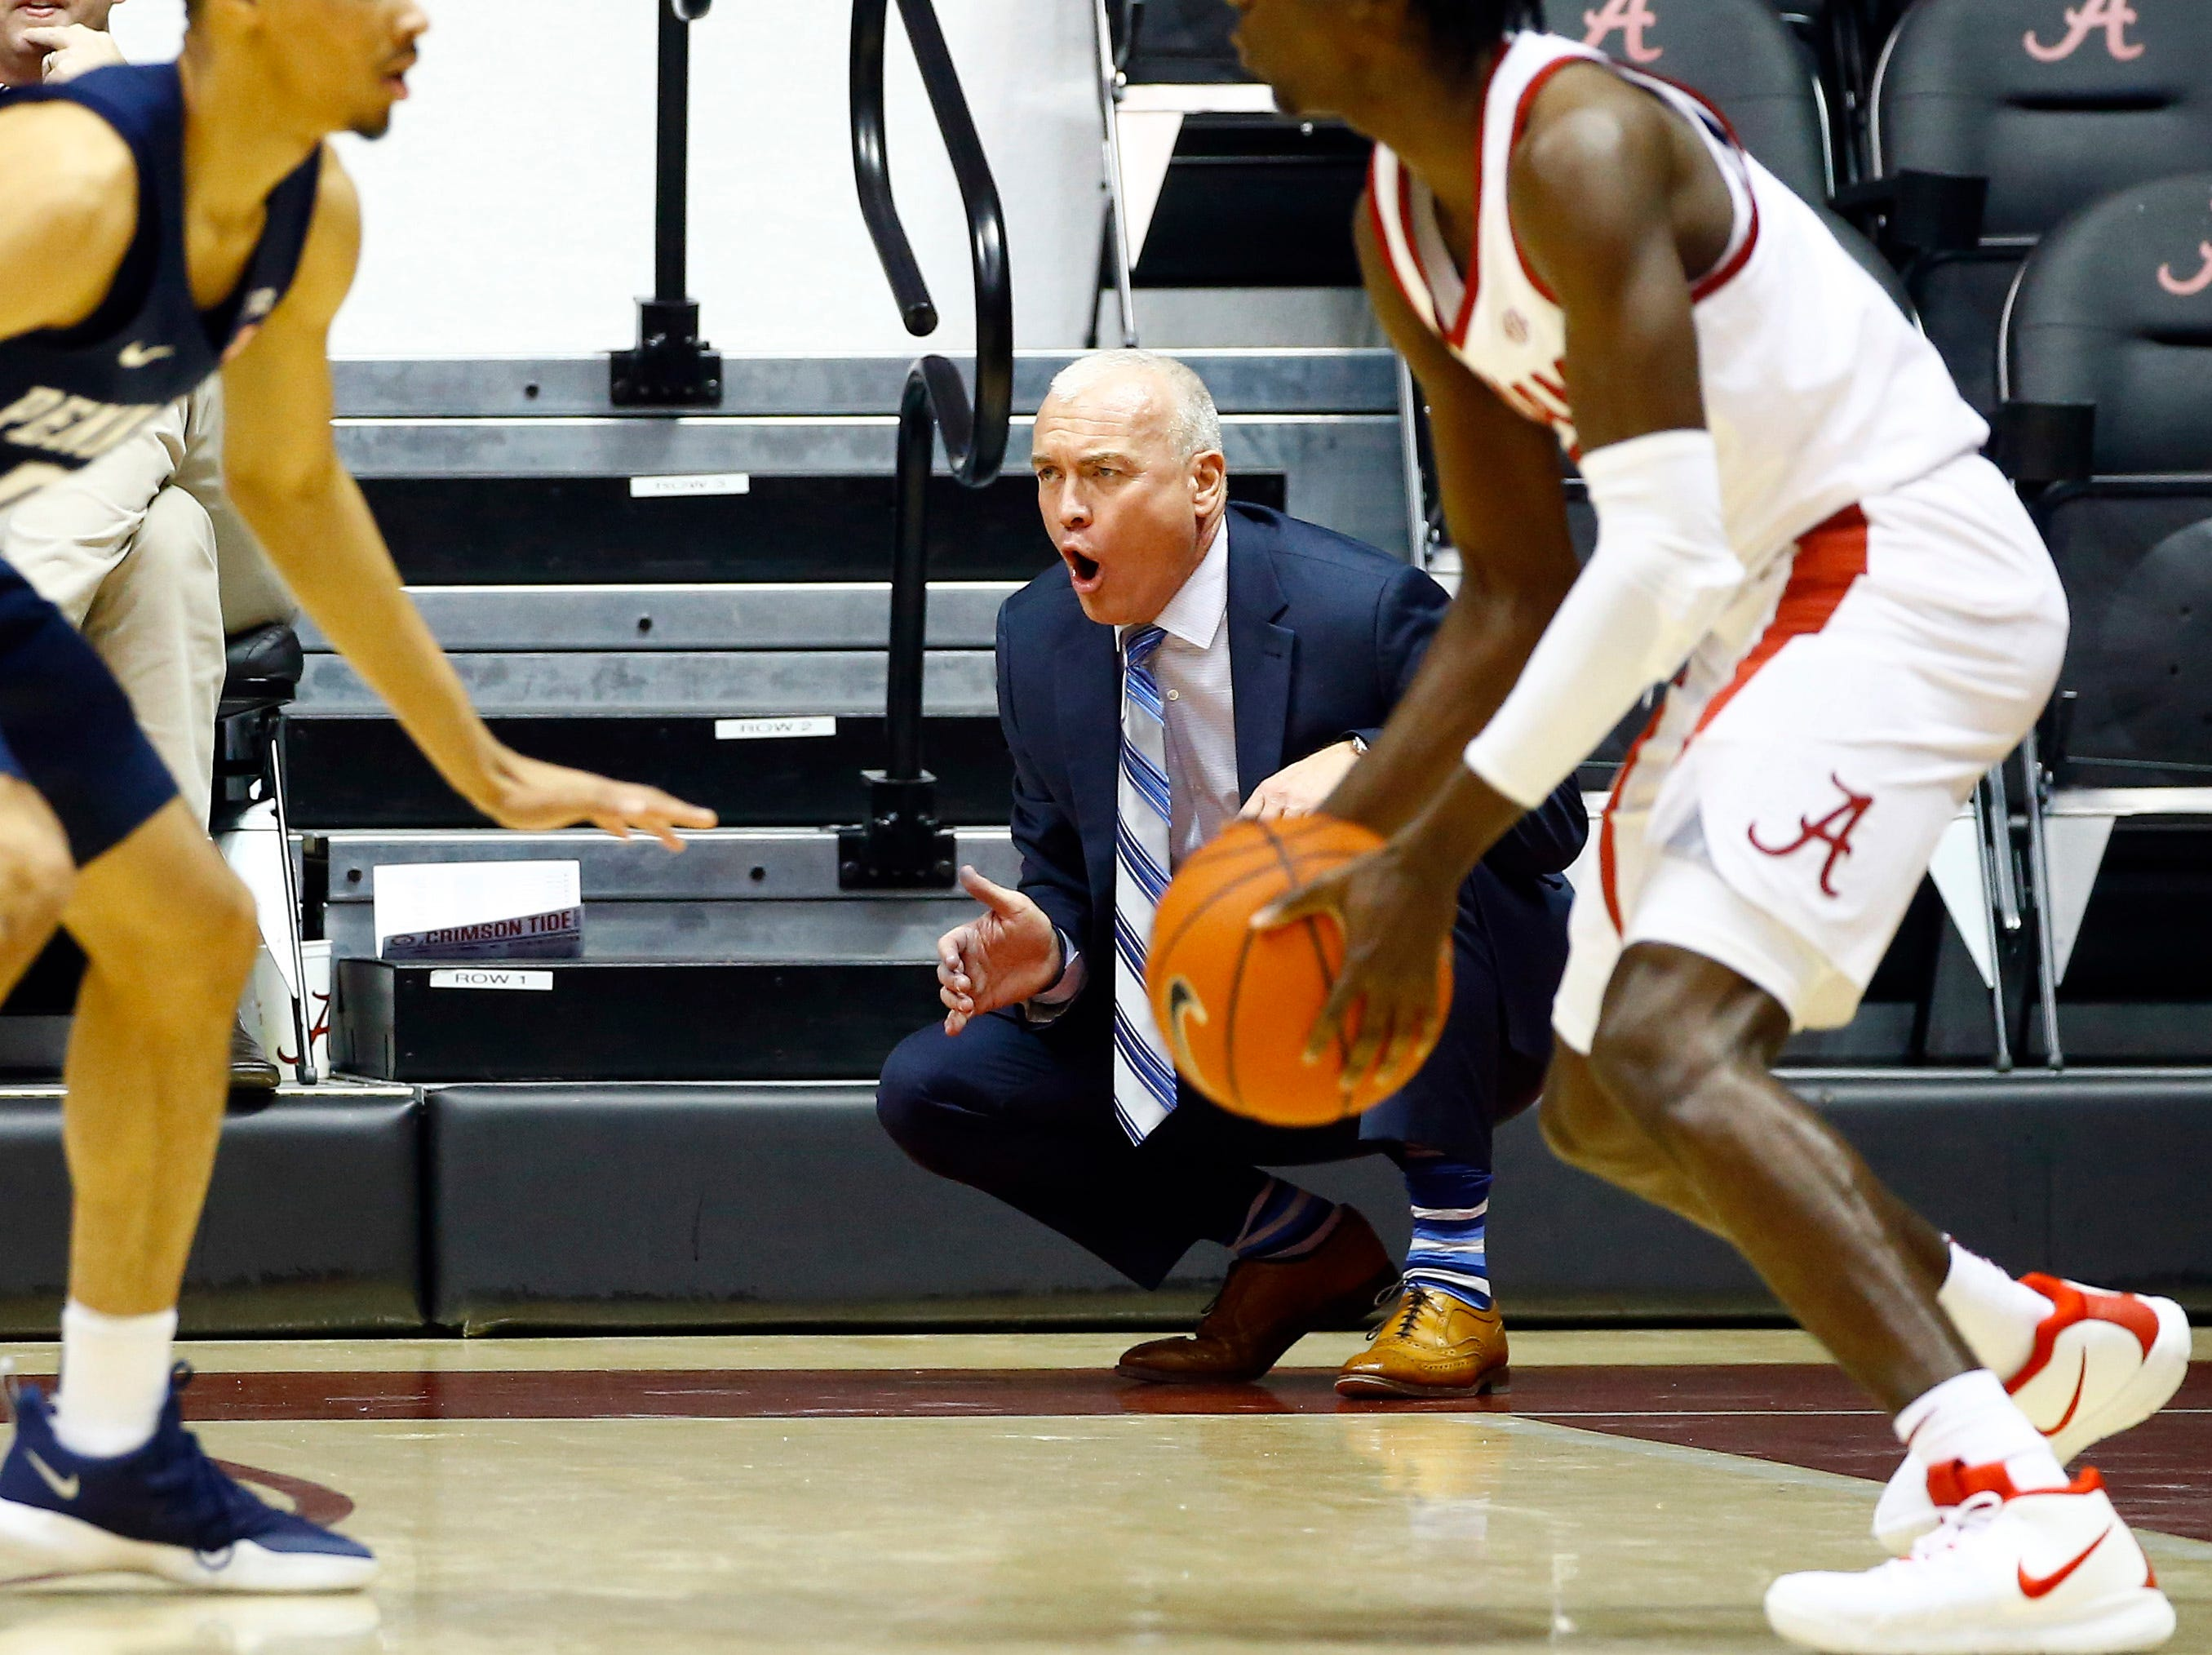 Dec 21, 2018; Tuscaloosa, AL, USA; Penn State Nittany Lions head coach Patrick Chambers yells from the sidelines during the first half of an NCAA college basketball game against the Alabama Crimson Tide at Coleman Coliseum. Mandatory Credit: Butch Dill-USA TODAY Sports